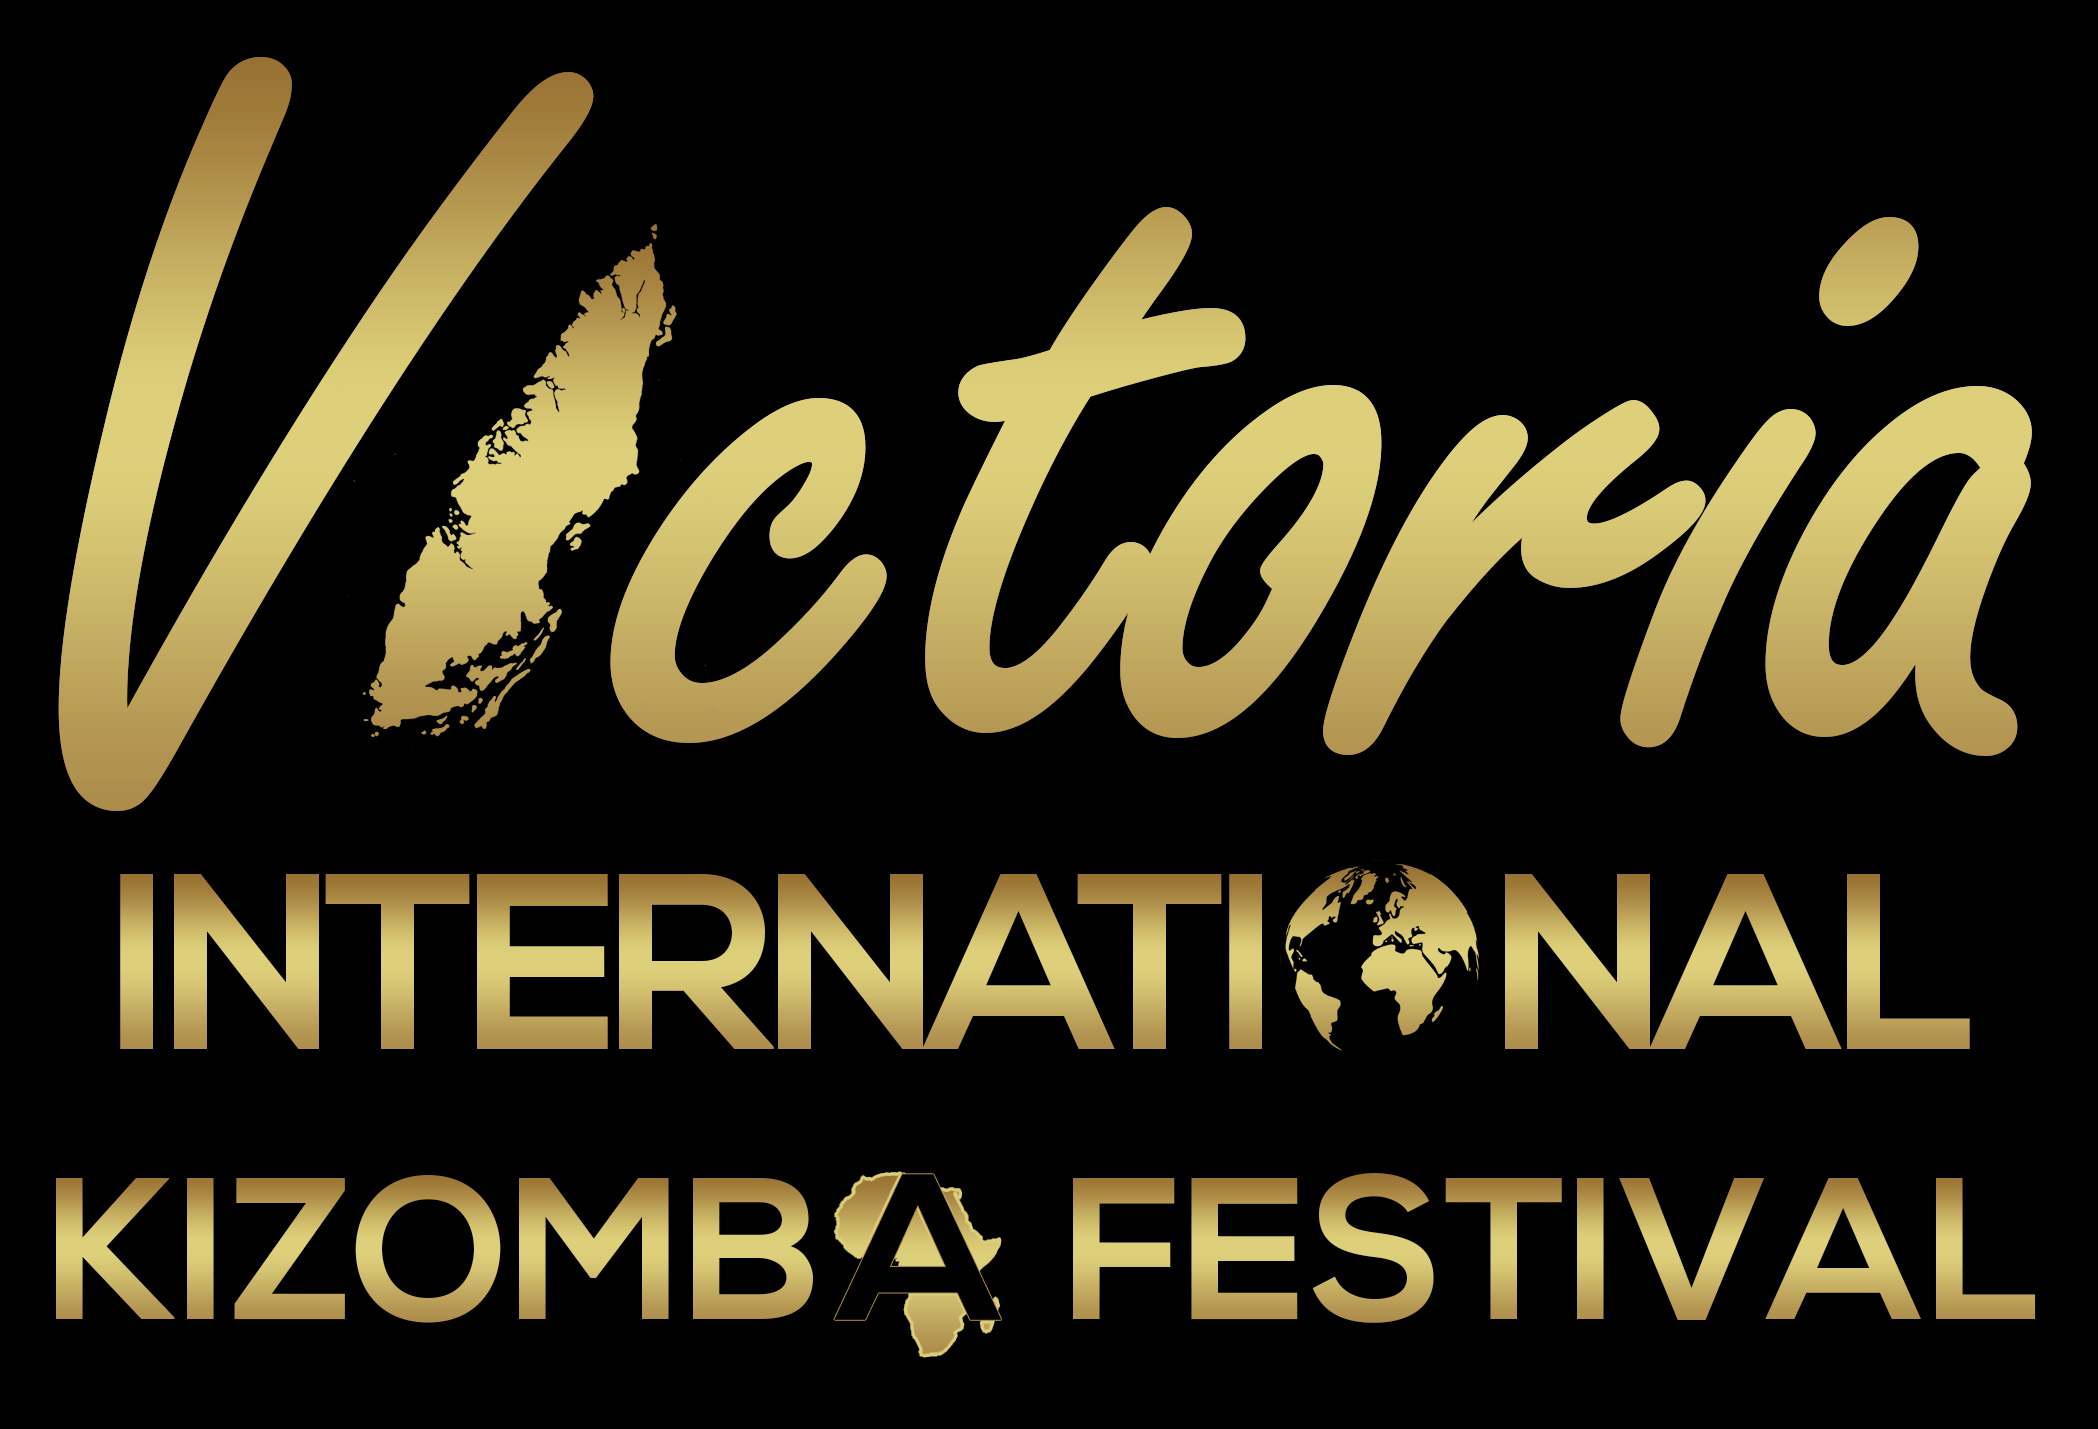 Victoria's annual international kizomba festival.